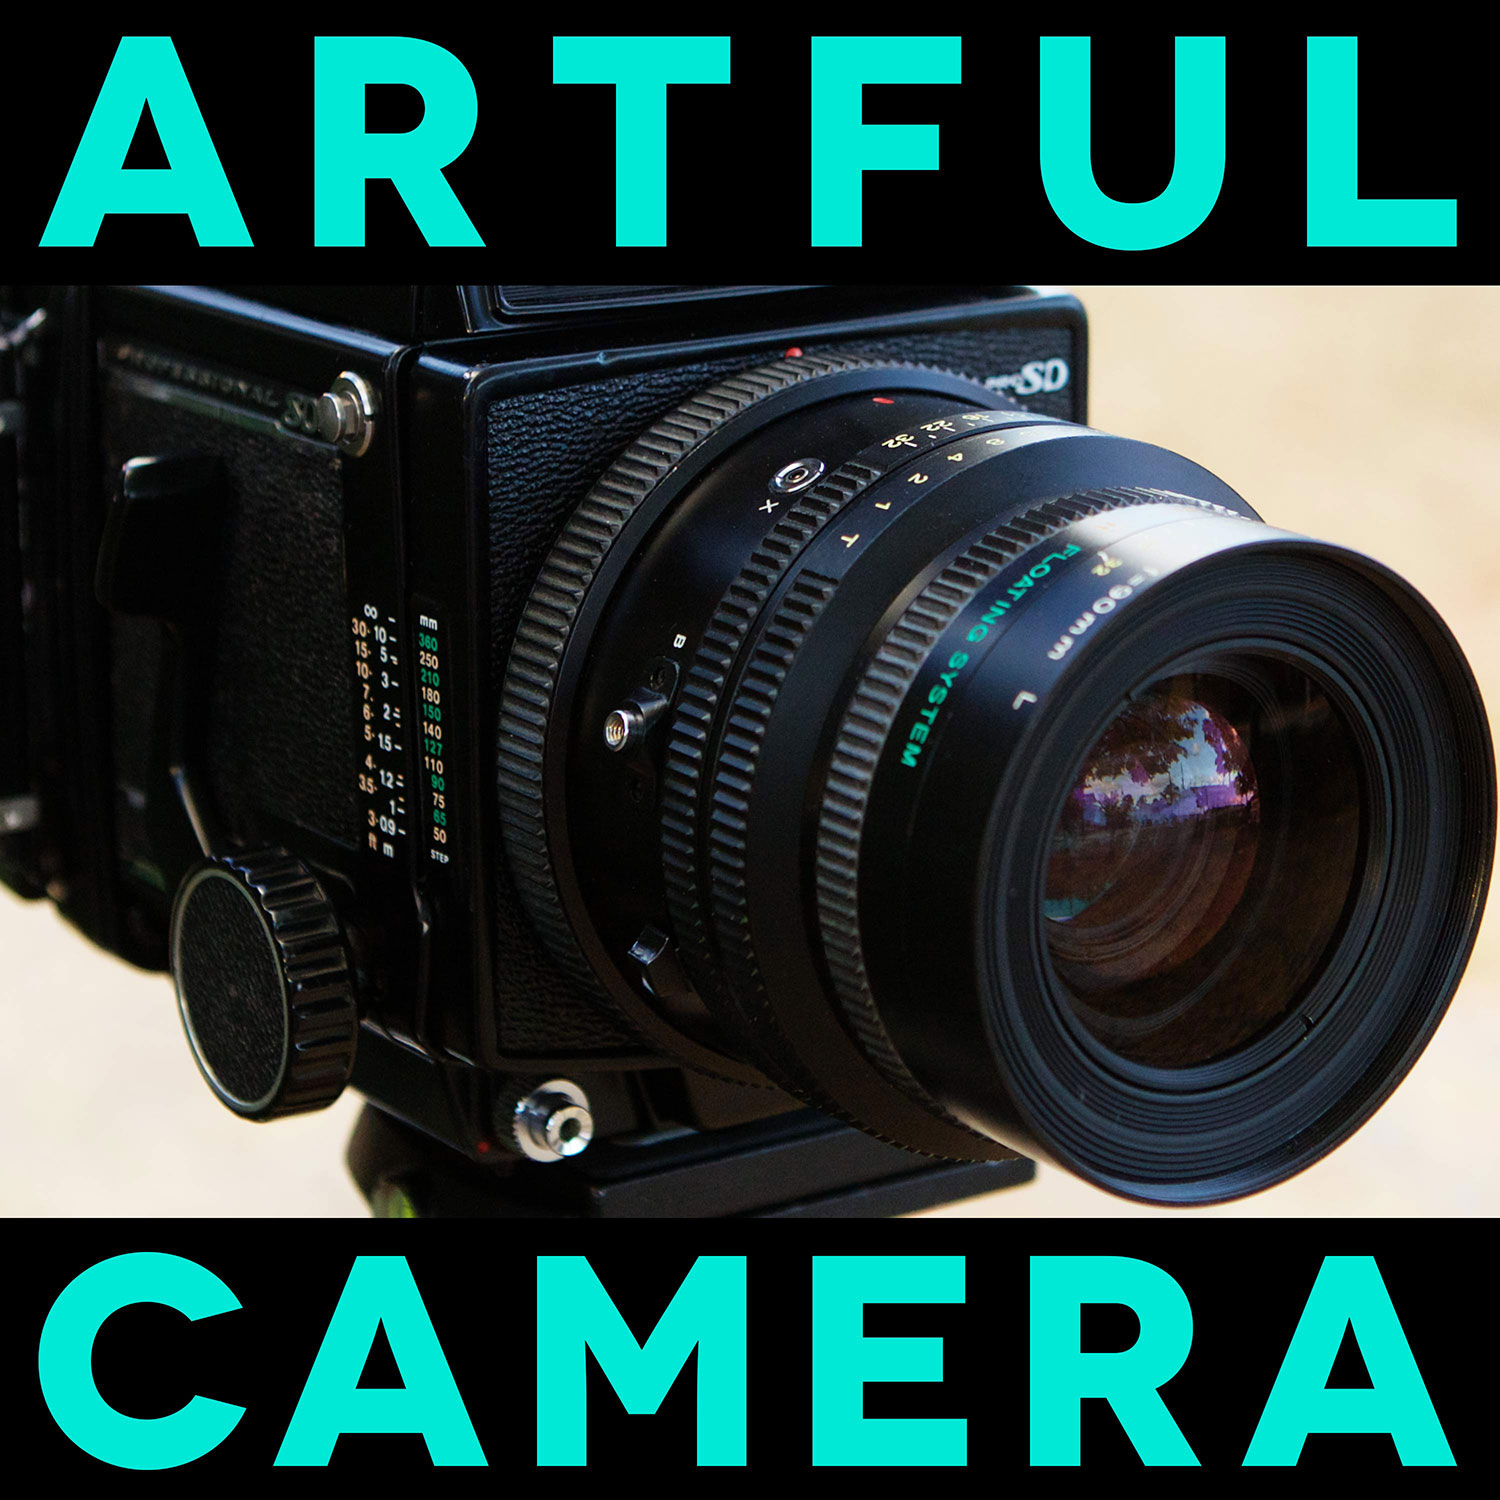 artful-camera-podcast.jpg